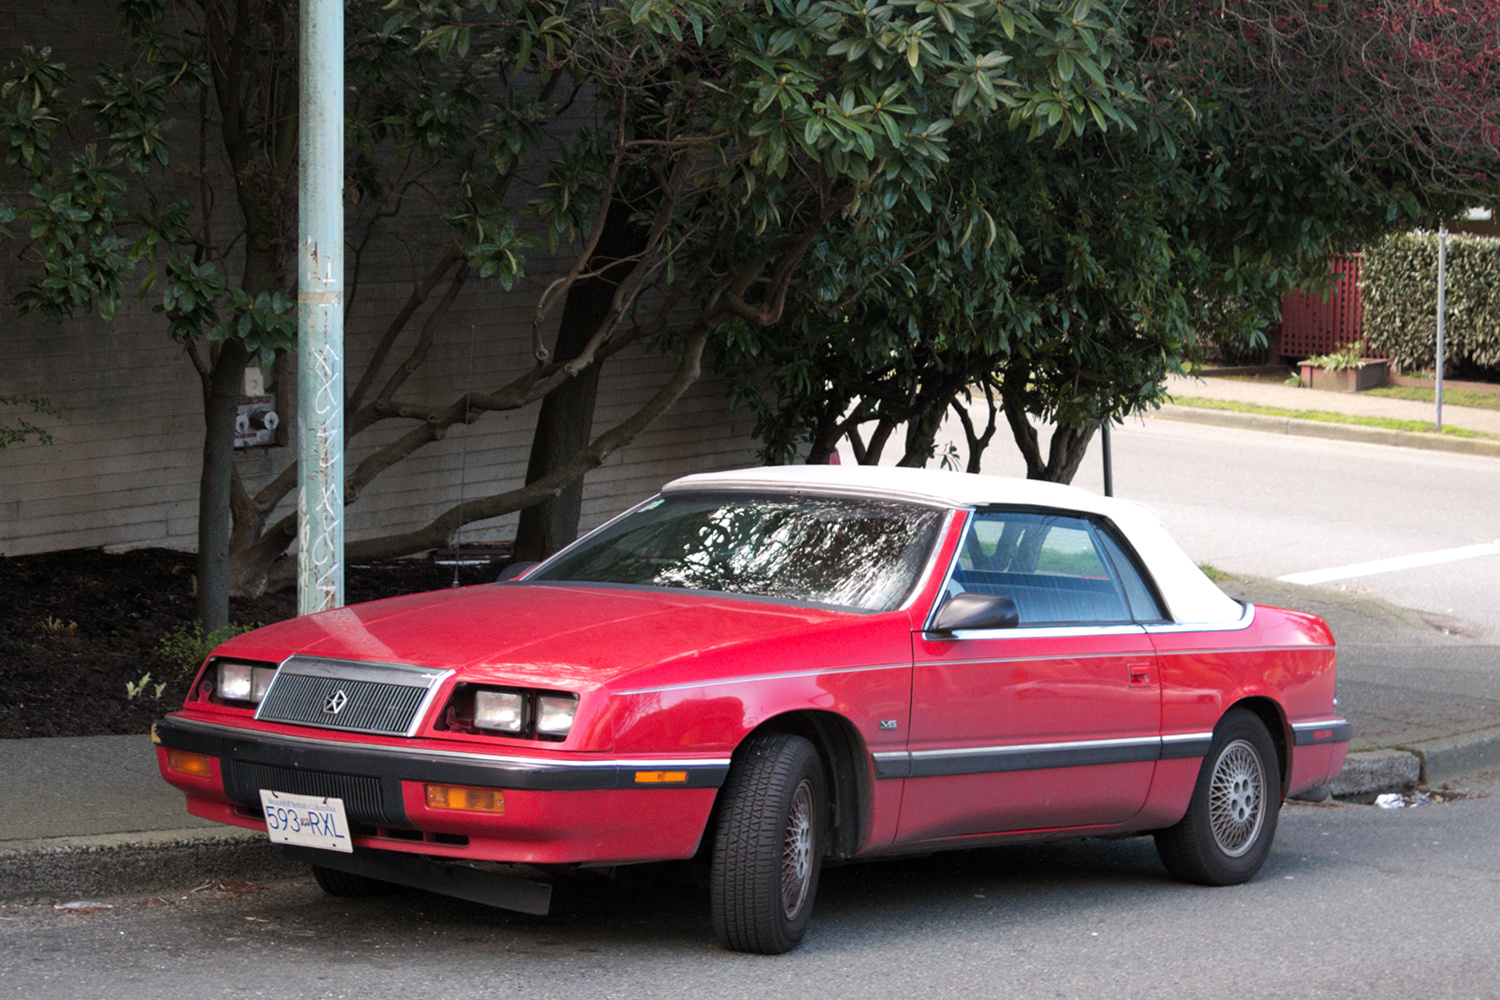 Old Parked Cars Vancouver: 1990 Chrysler LeBaron Convertible